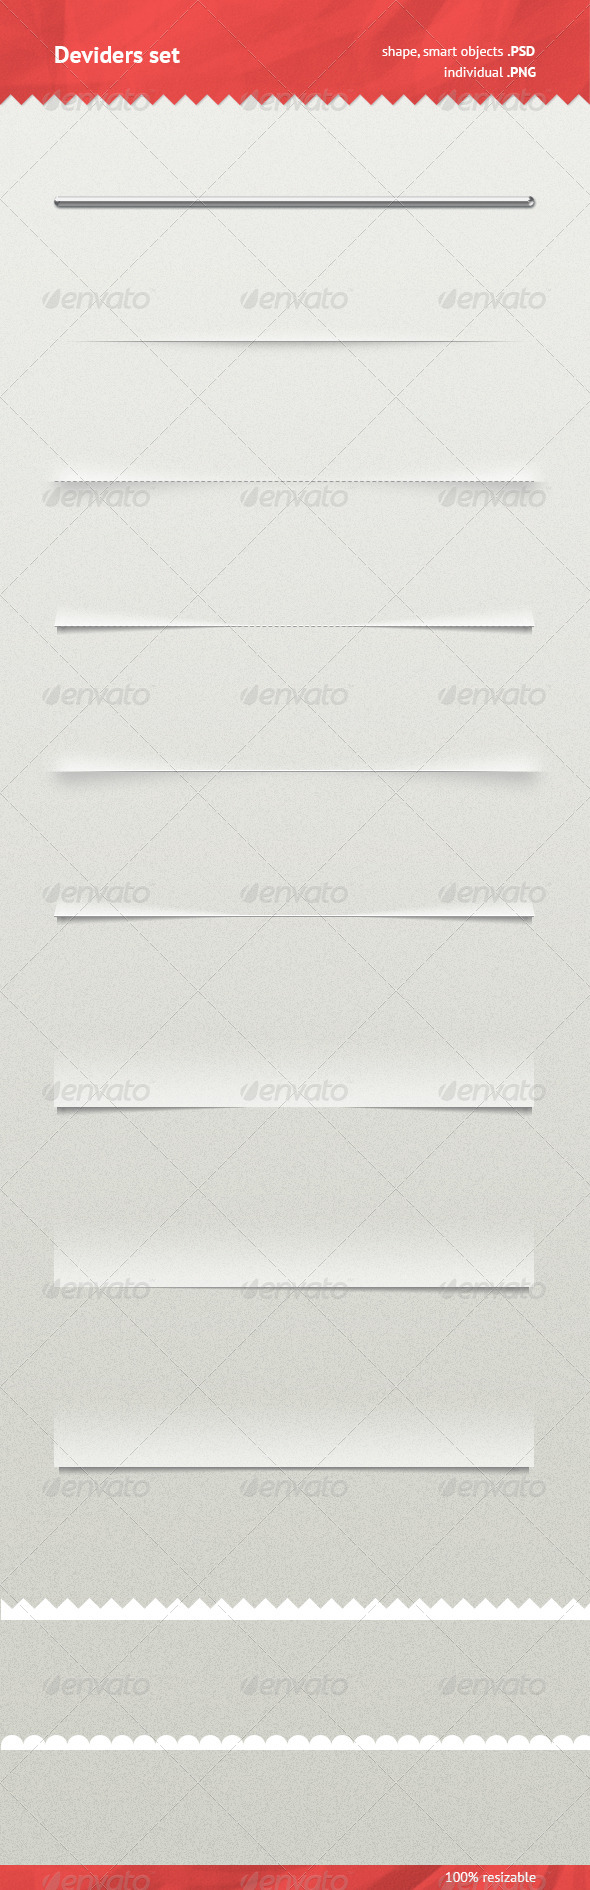 GraphicRiver Dividers Set 6879357